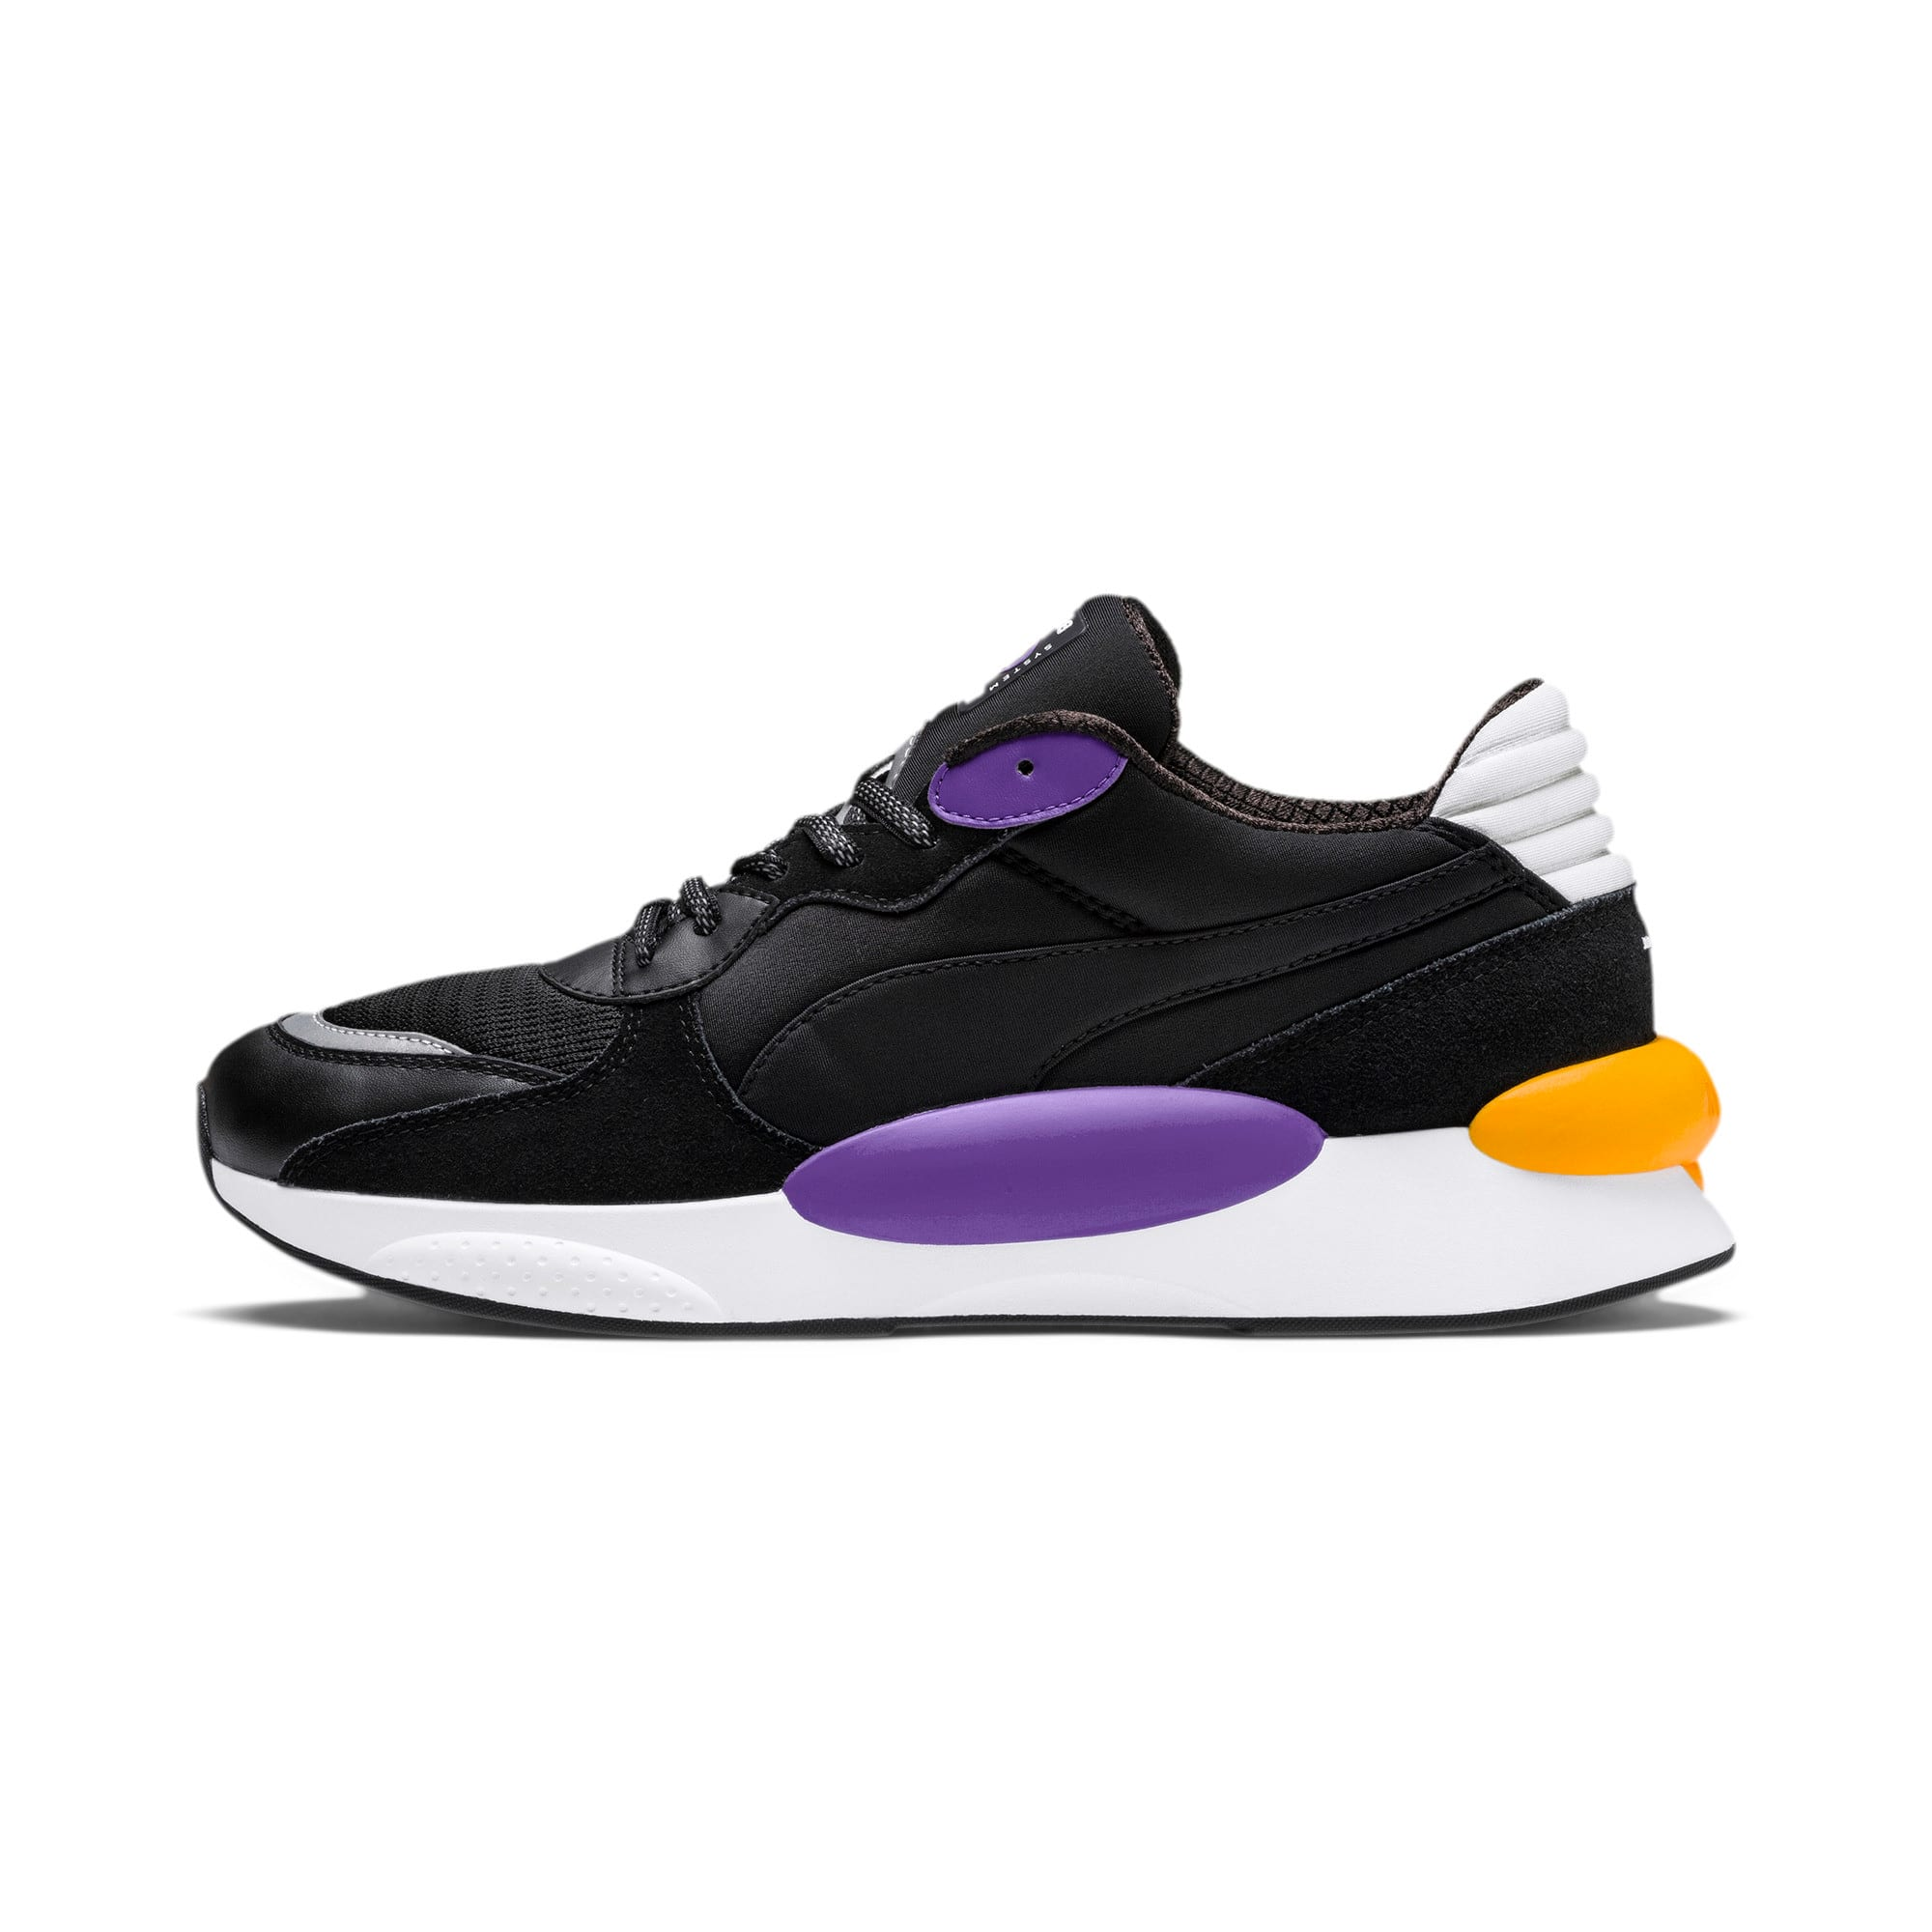 Imagen en miniatura 1 de Zapatillas RS 9.8 Gravity, Puma Black-Purple Glimmer, mediana